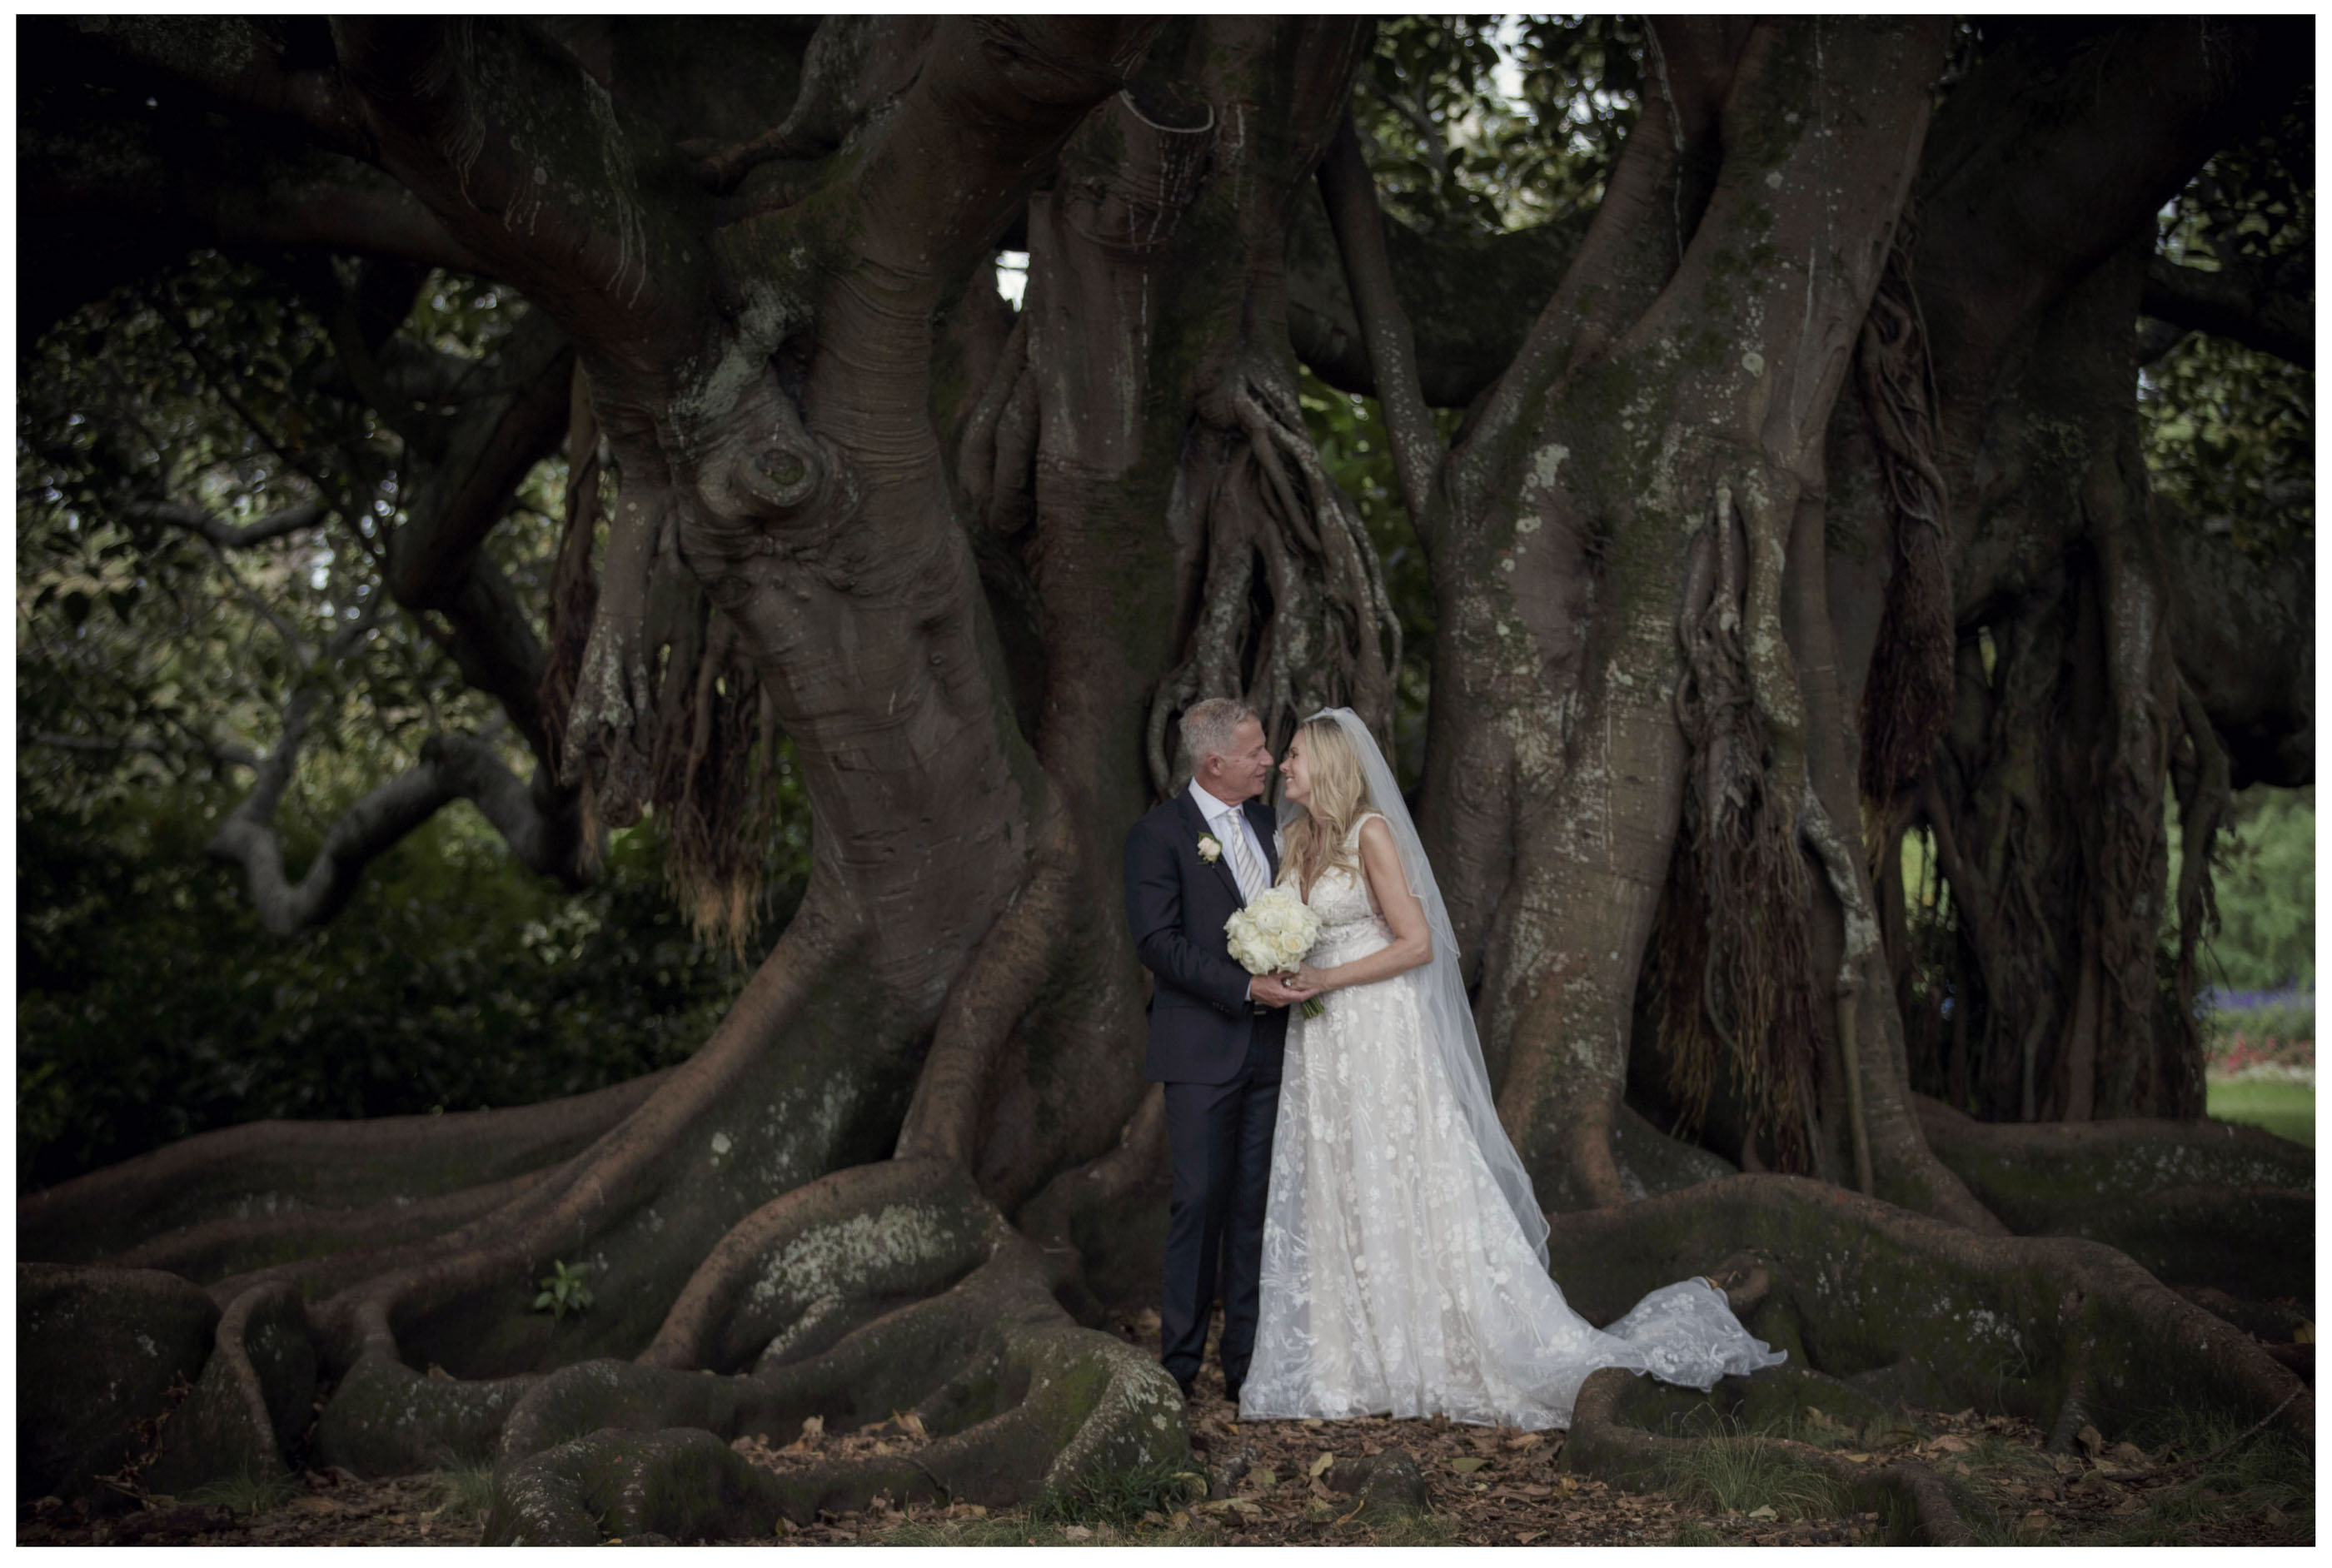 Wedding photo at Cibo Parnell by Chris Loufte www.theweddingphotographer.co.nz